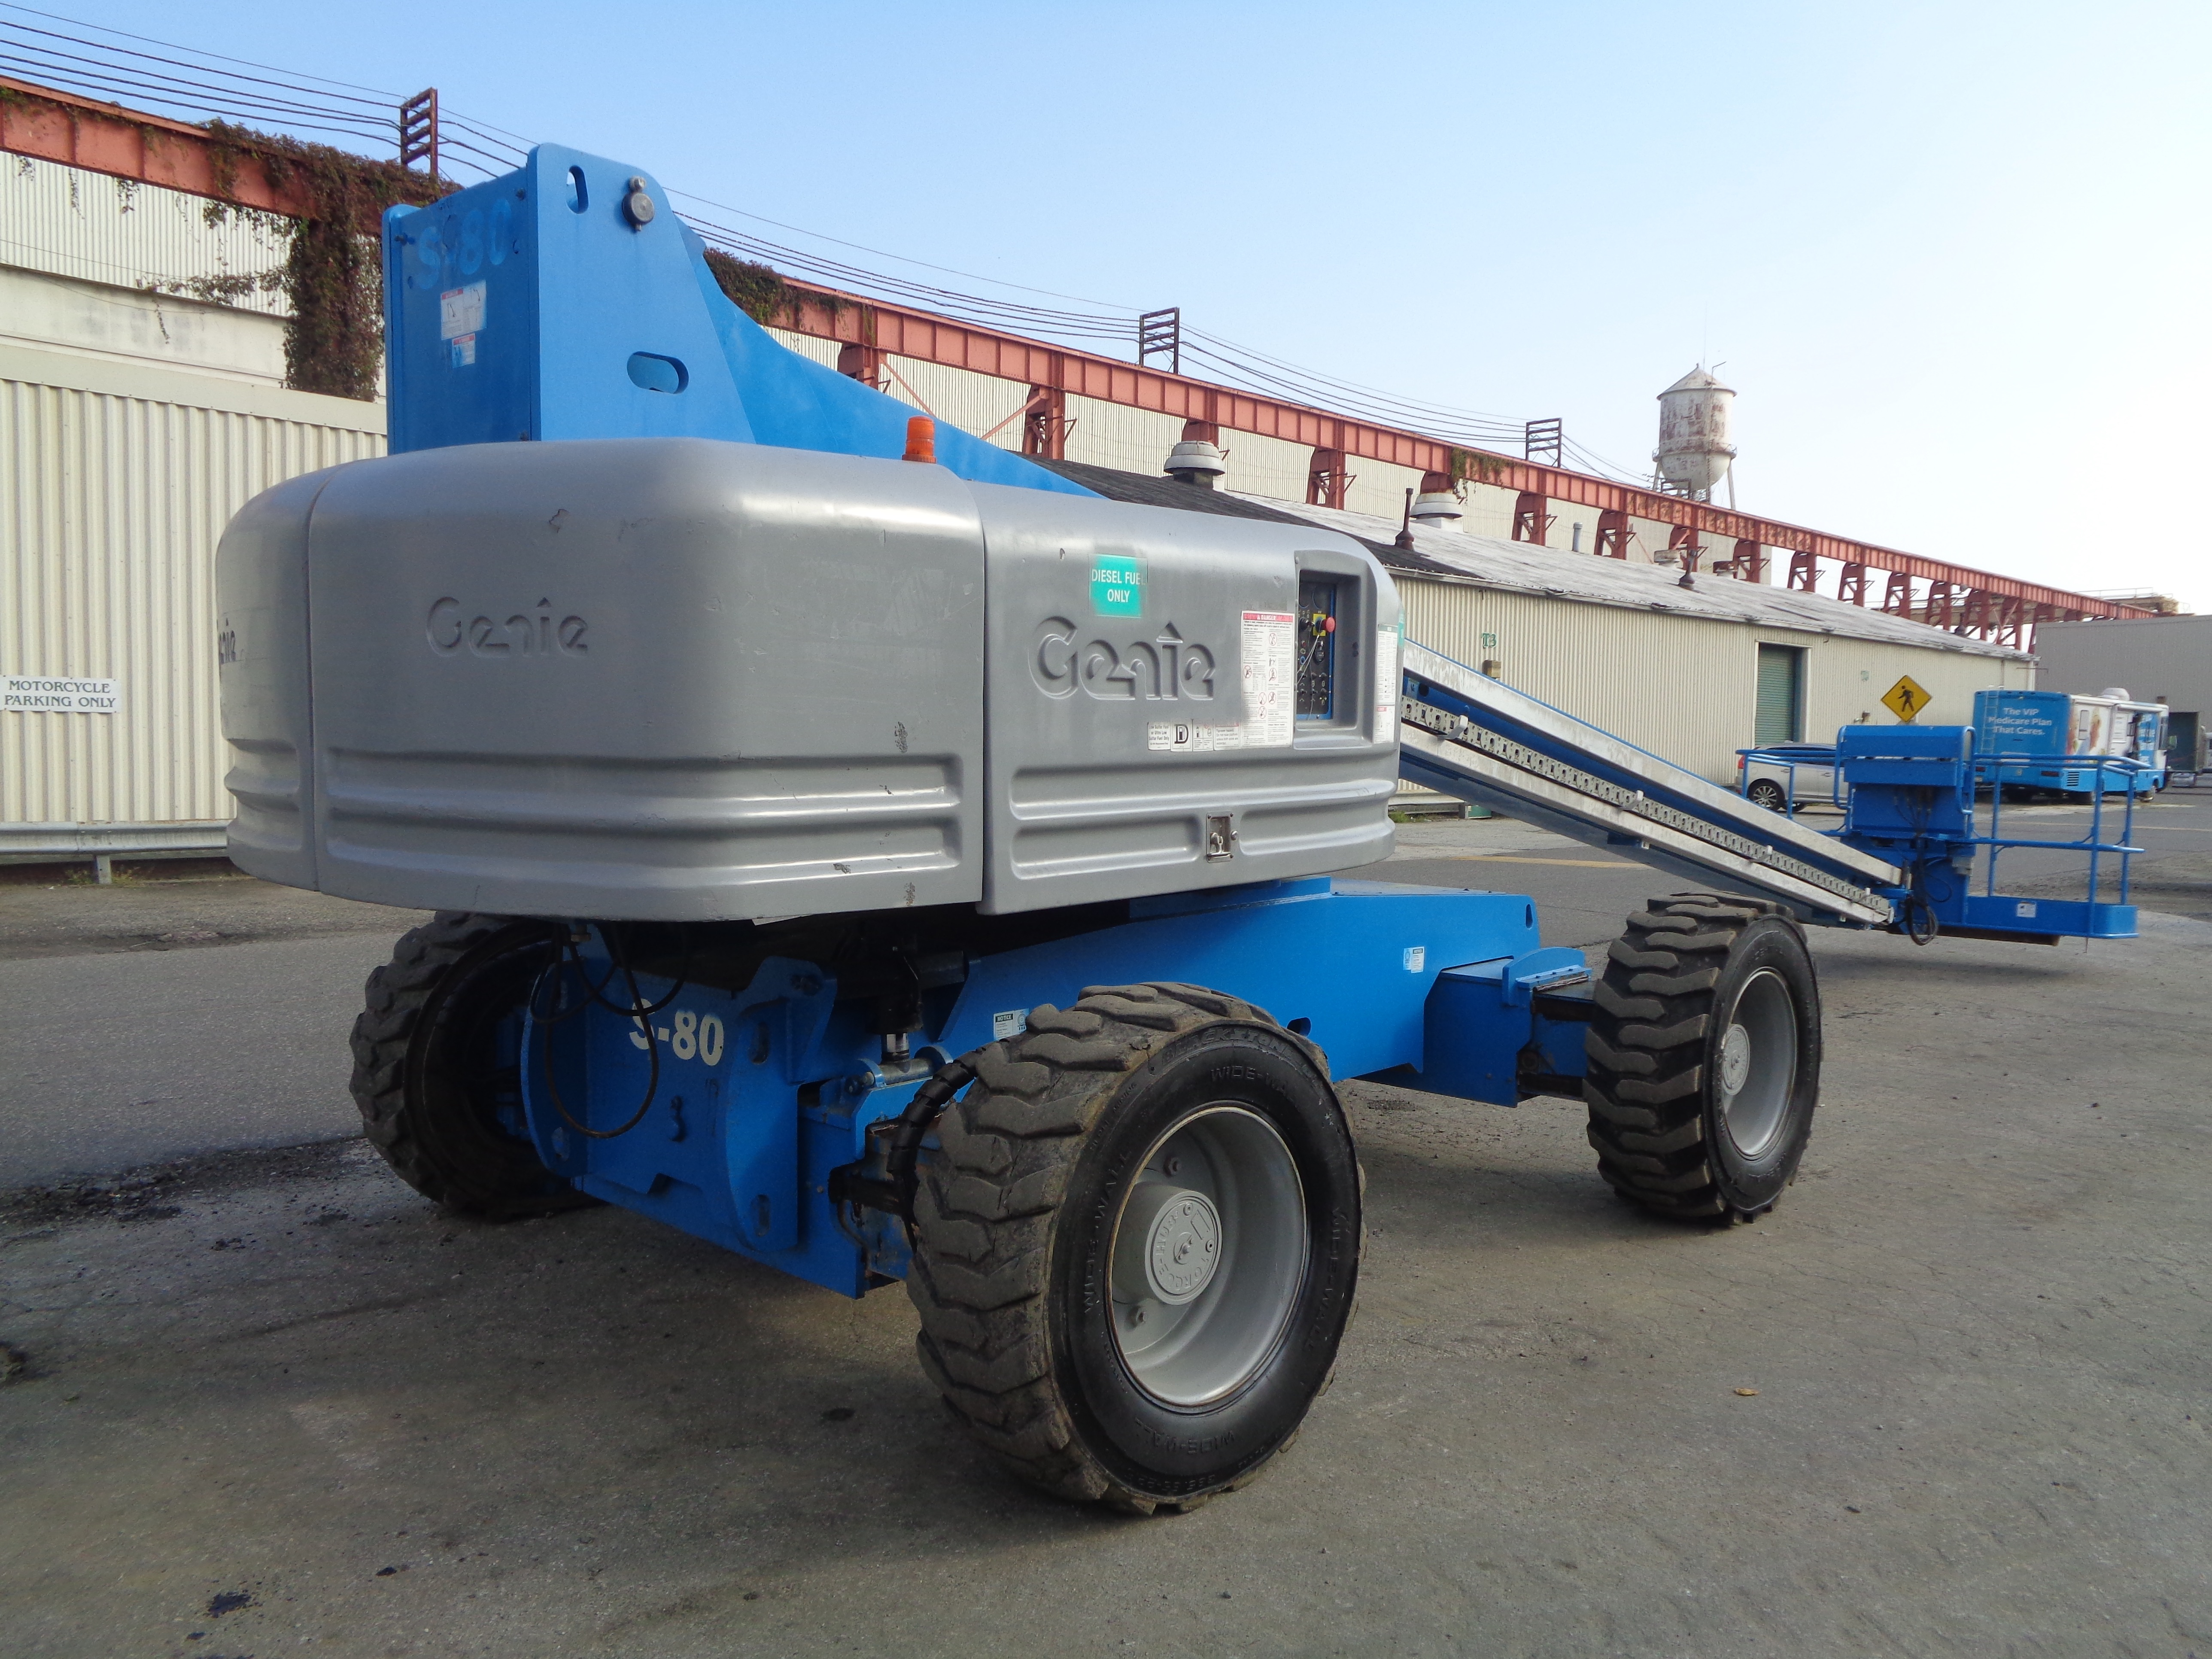 Genie S80 80ft Boom Lift - Image 7 of 22